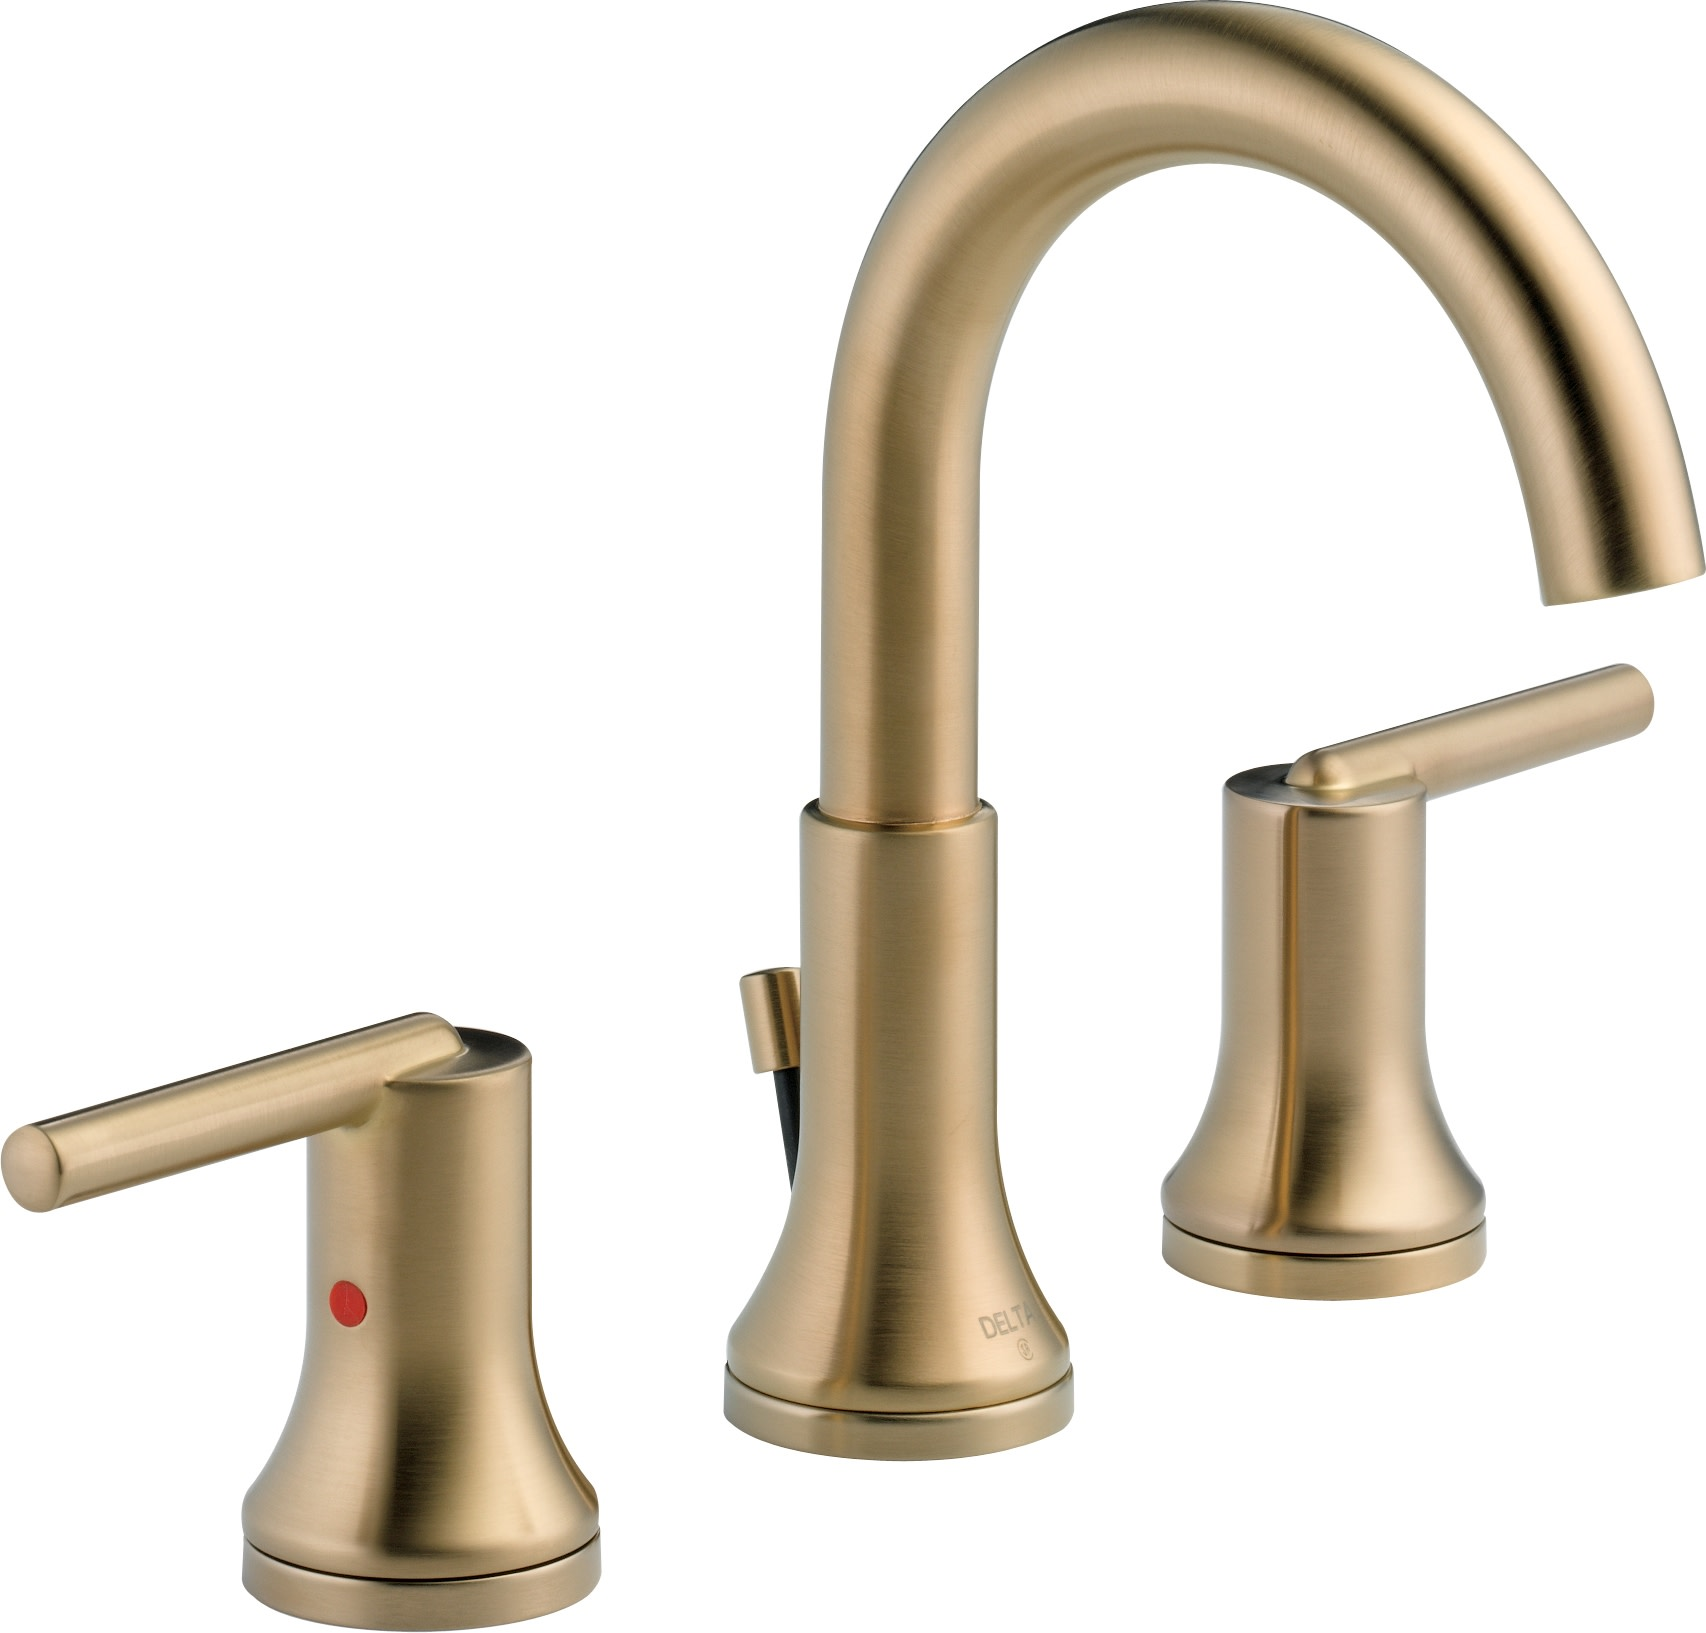 Dst Trinsic Widespread Bathroom Faucet